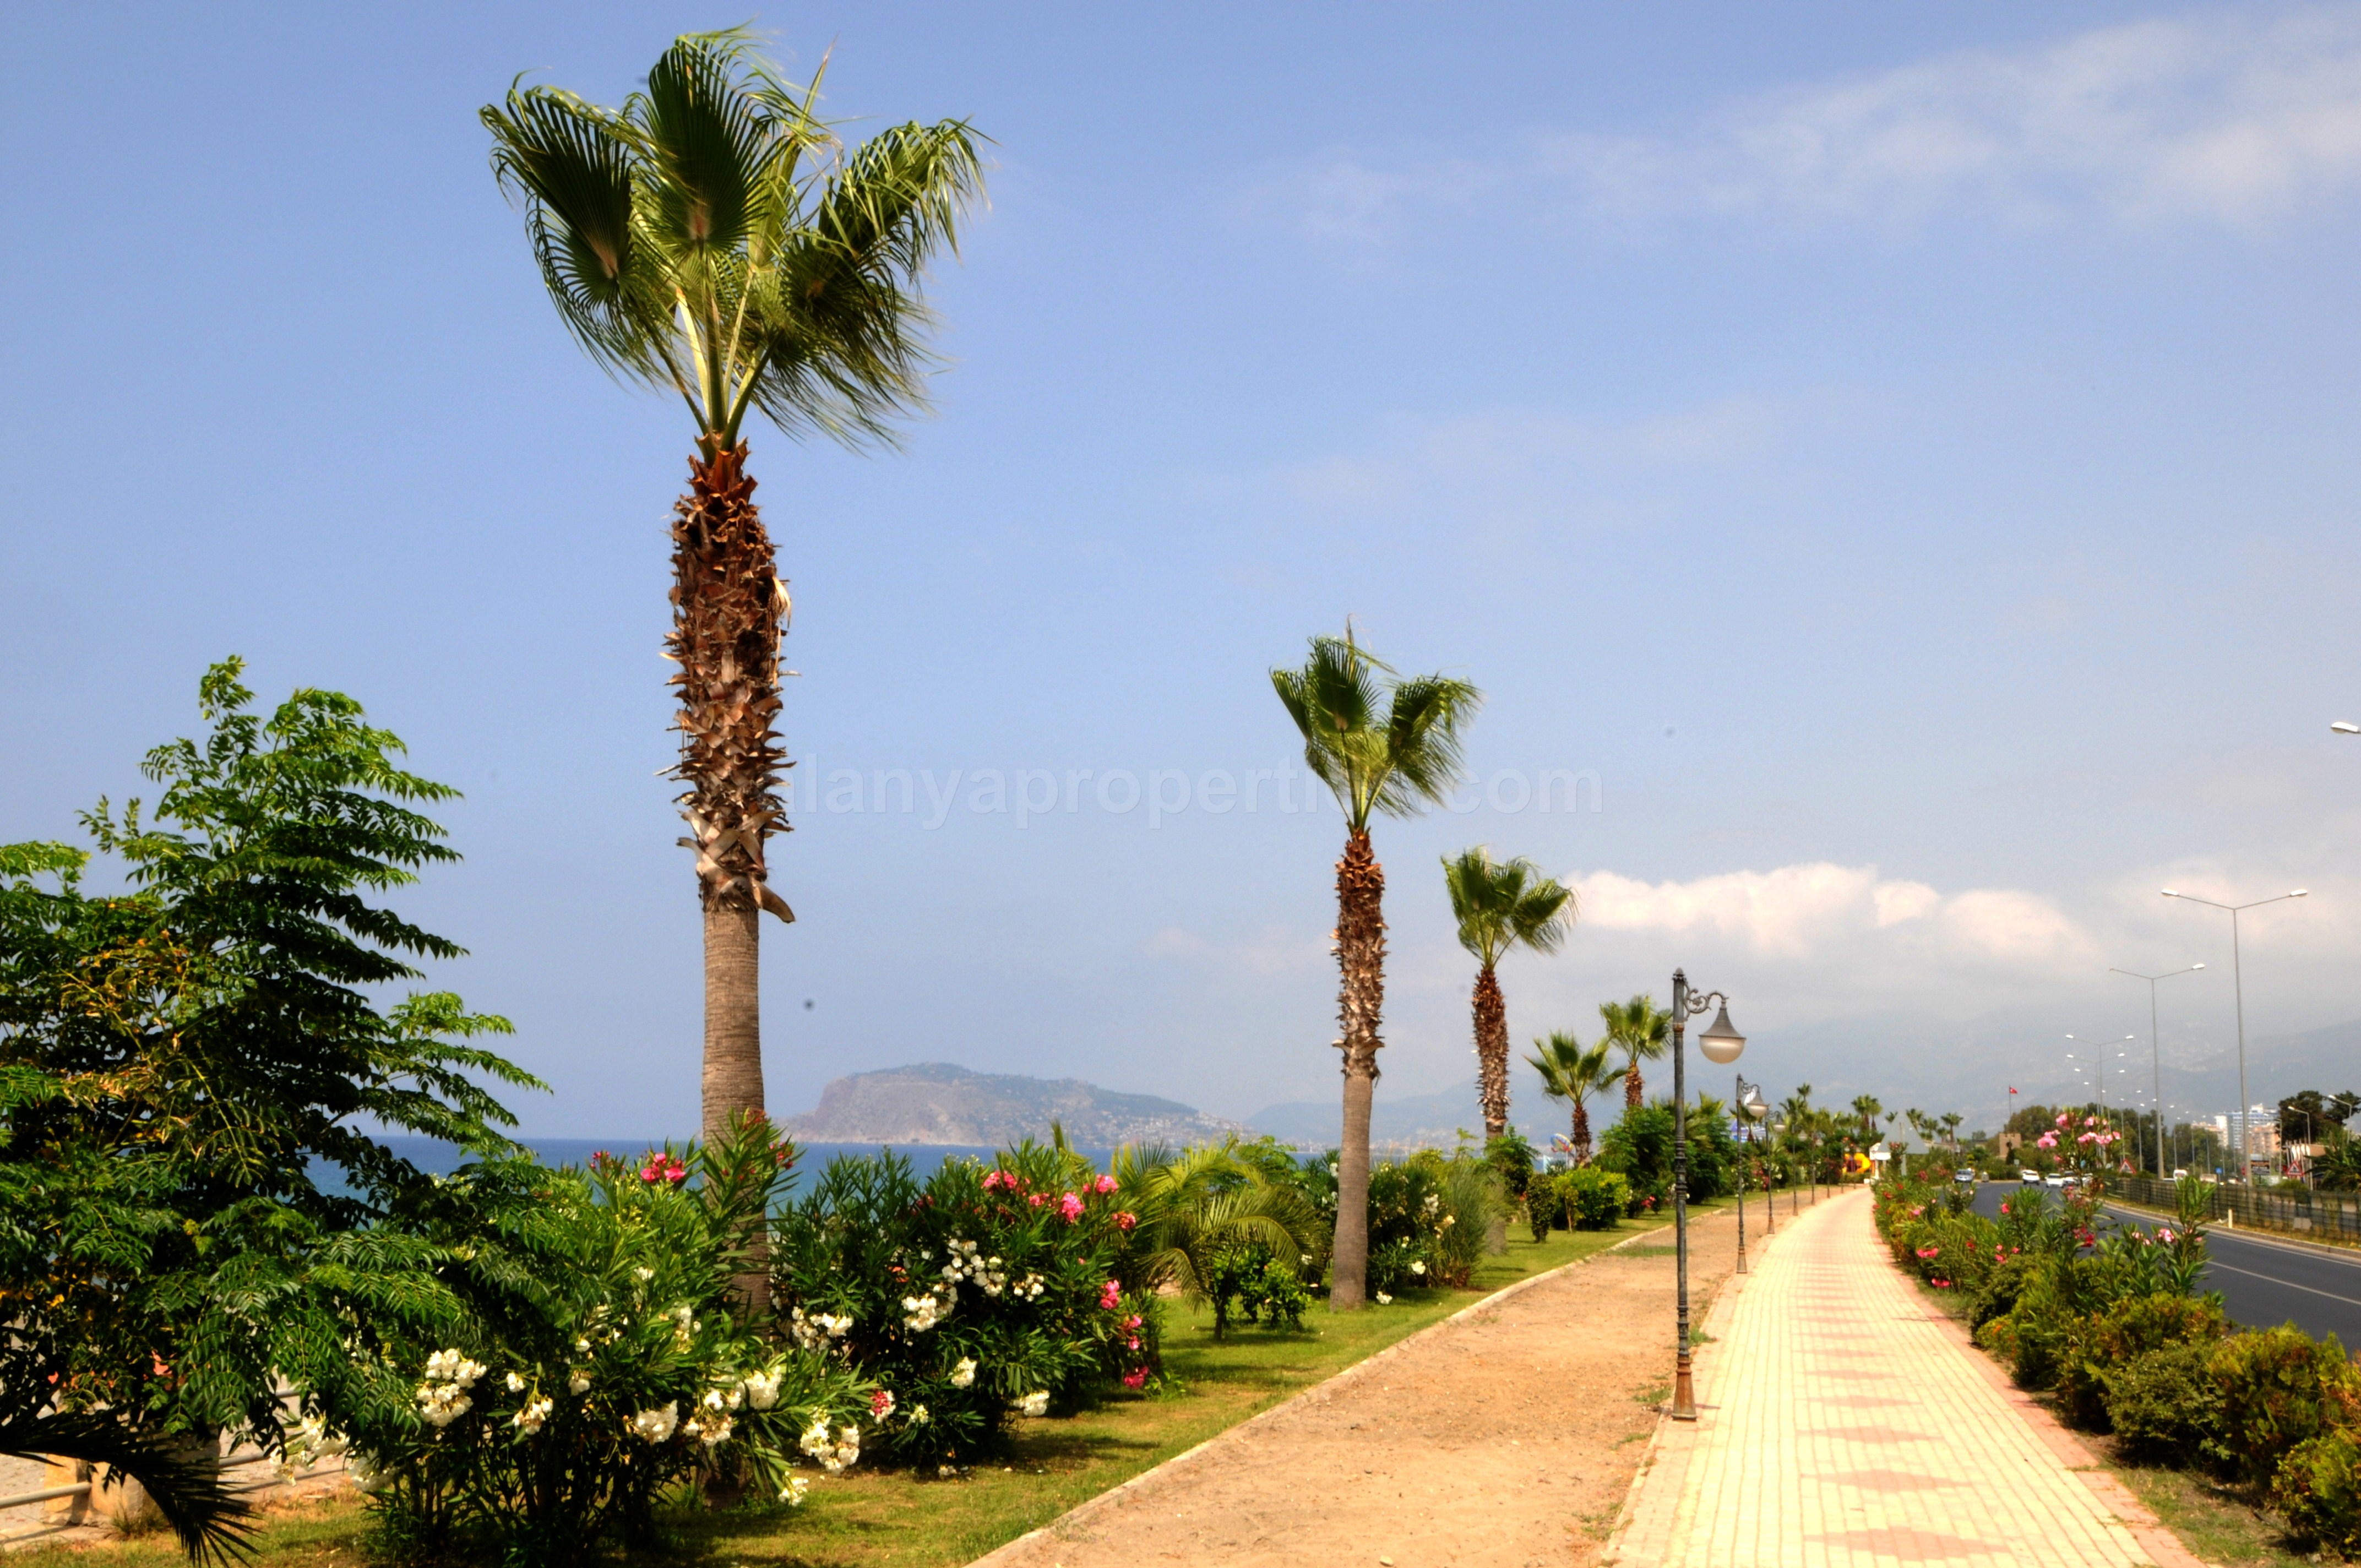 Picture from Kestel, Alanya, Turkey